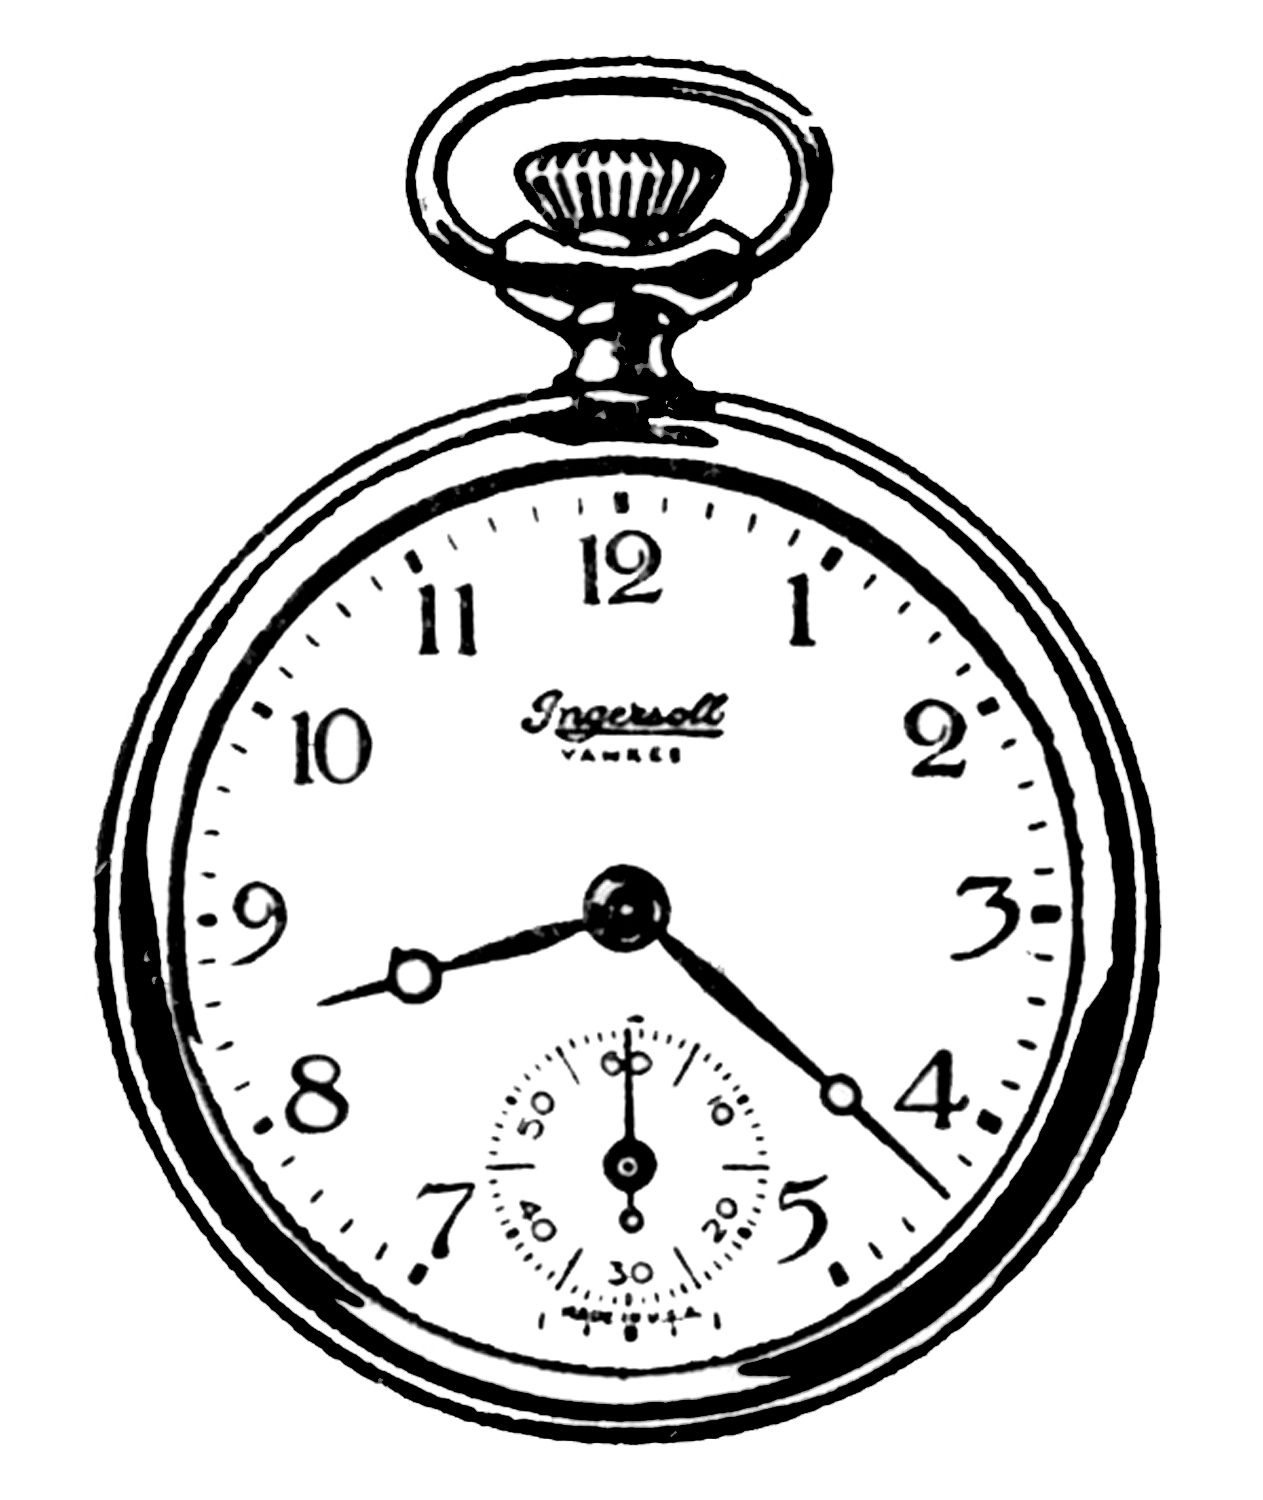 alice in wonderland clock clipart - photo #20